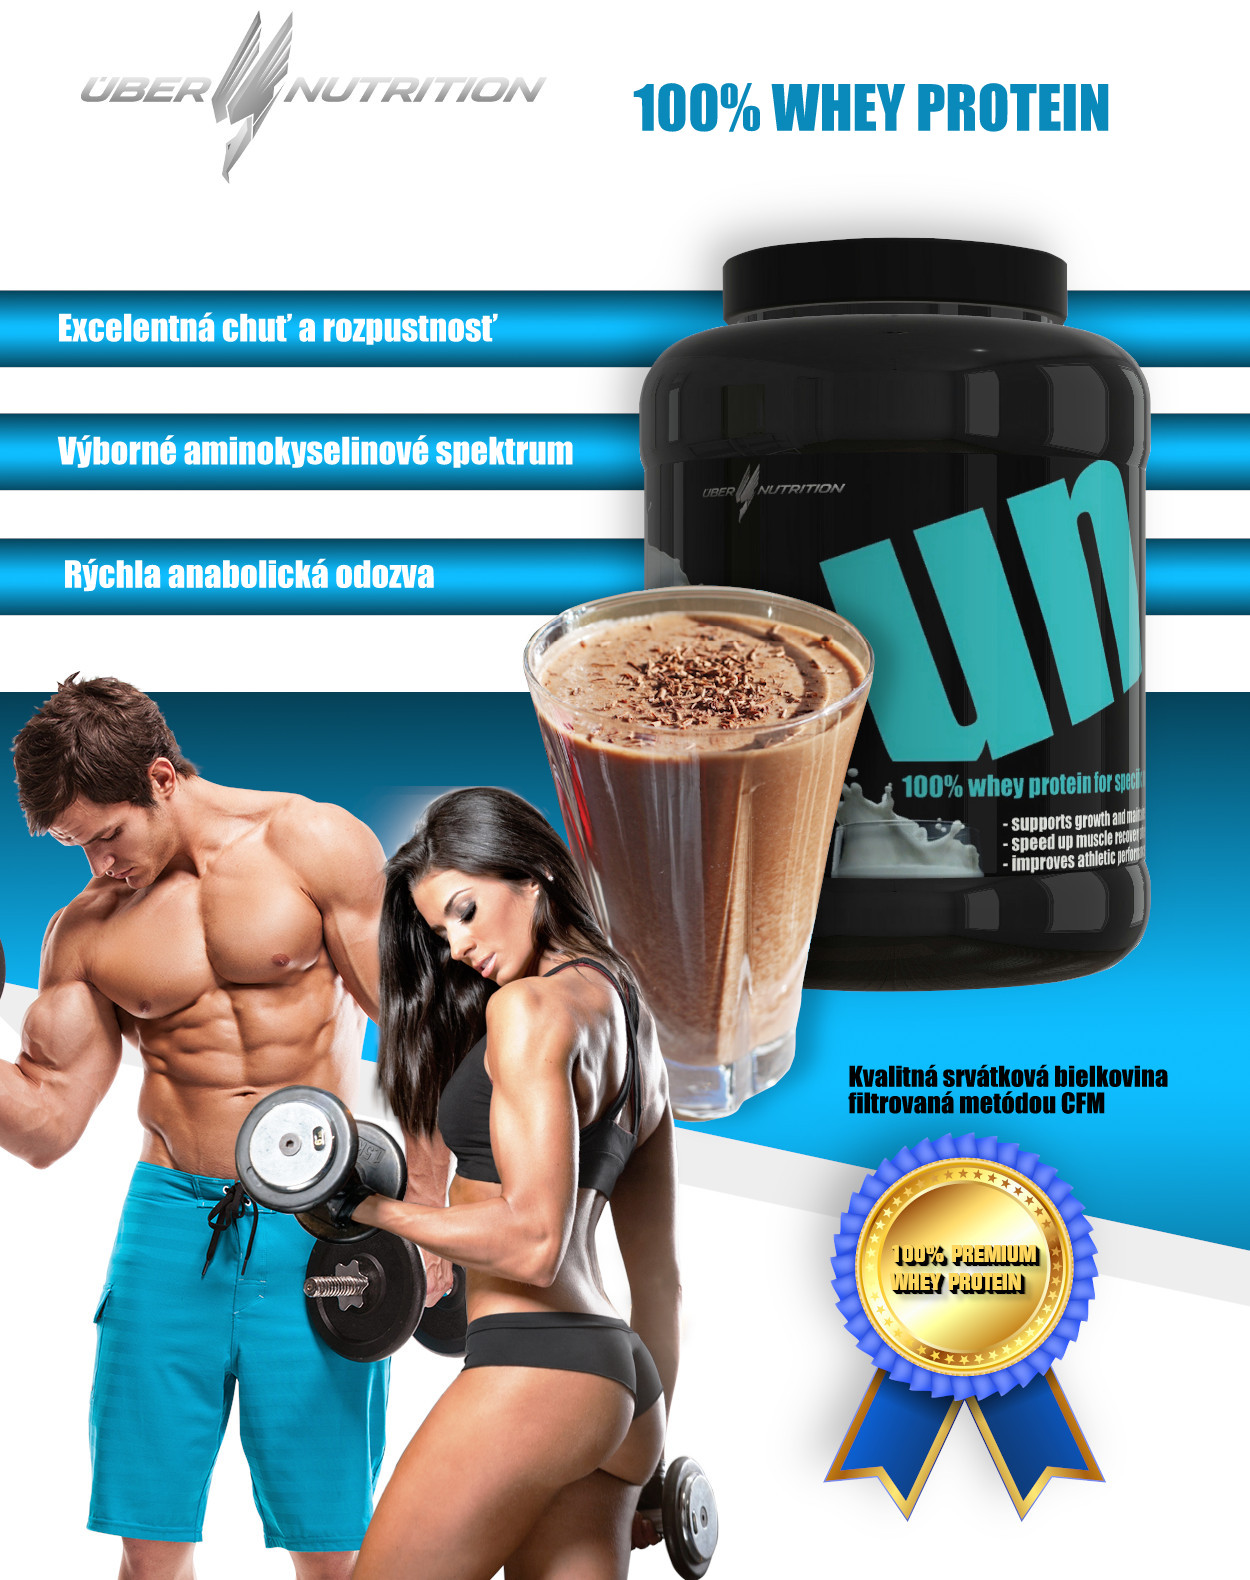 whey protein plagat3